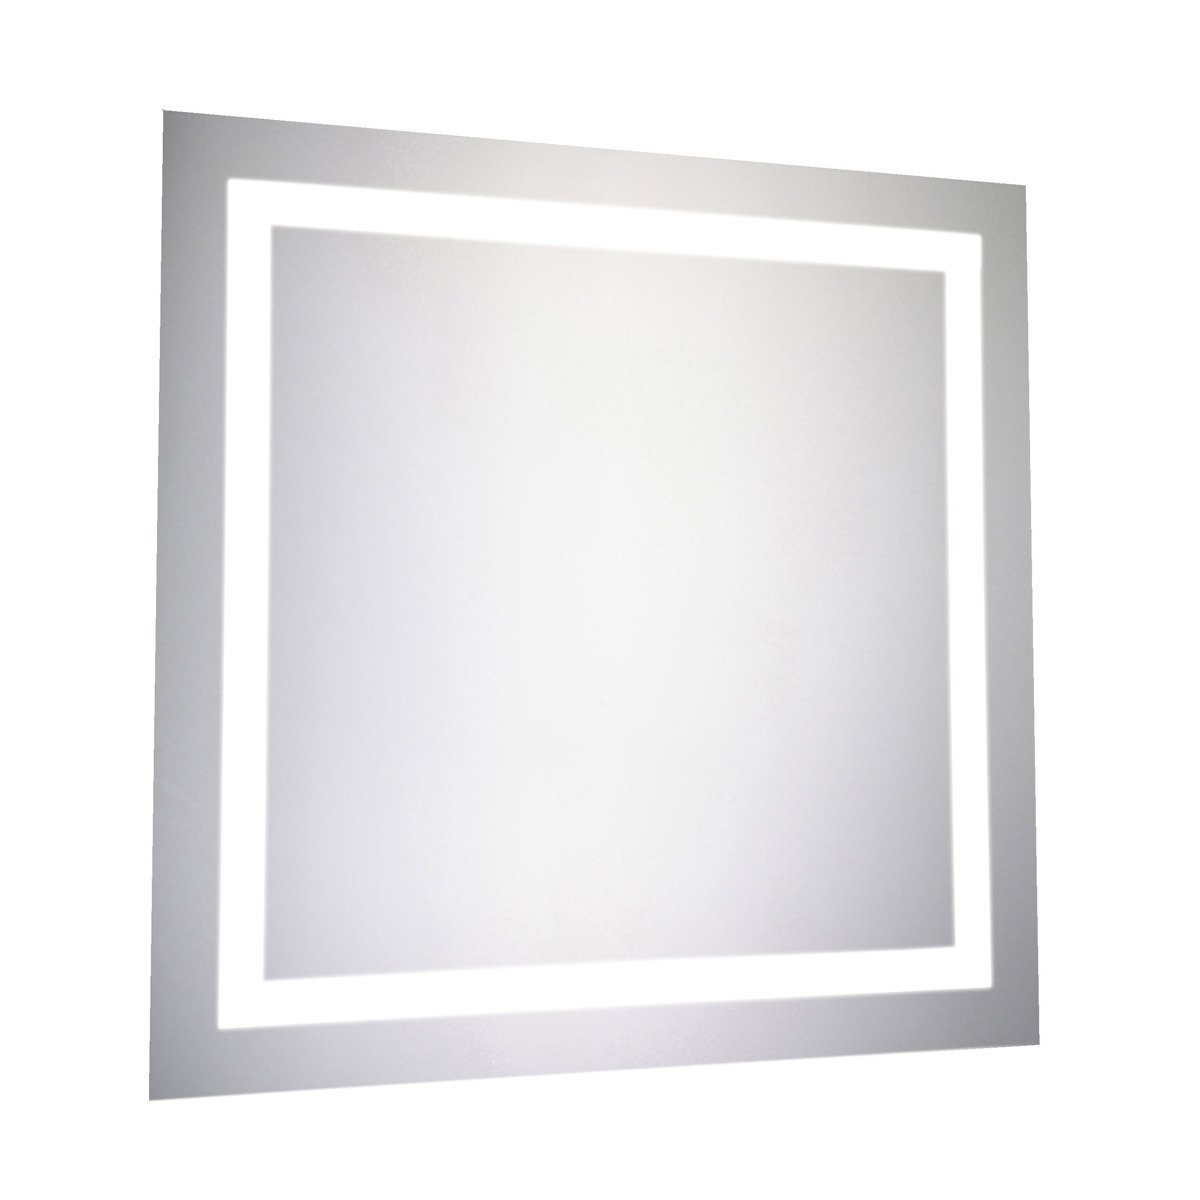 Nova 28 X 28 Hardwired Glossy White Led Wall Mirror (Mre-6010) Led Mirror